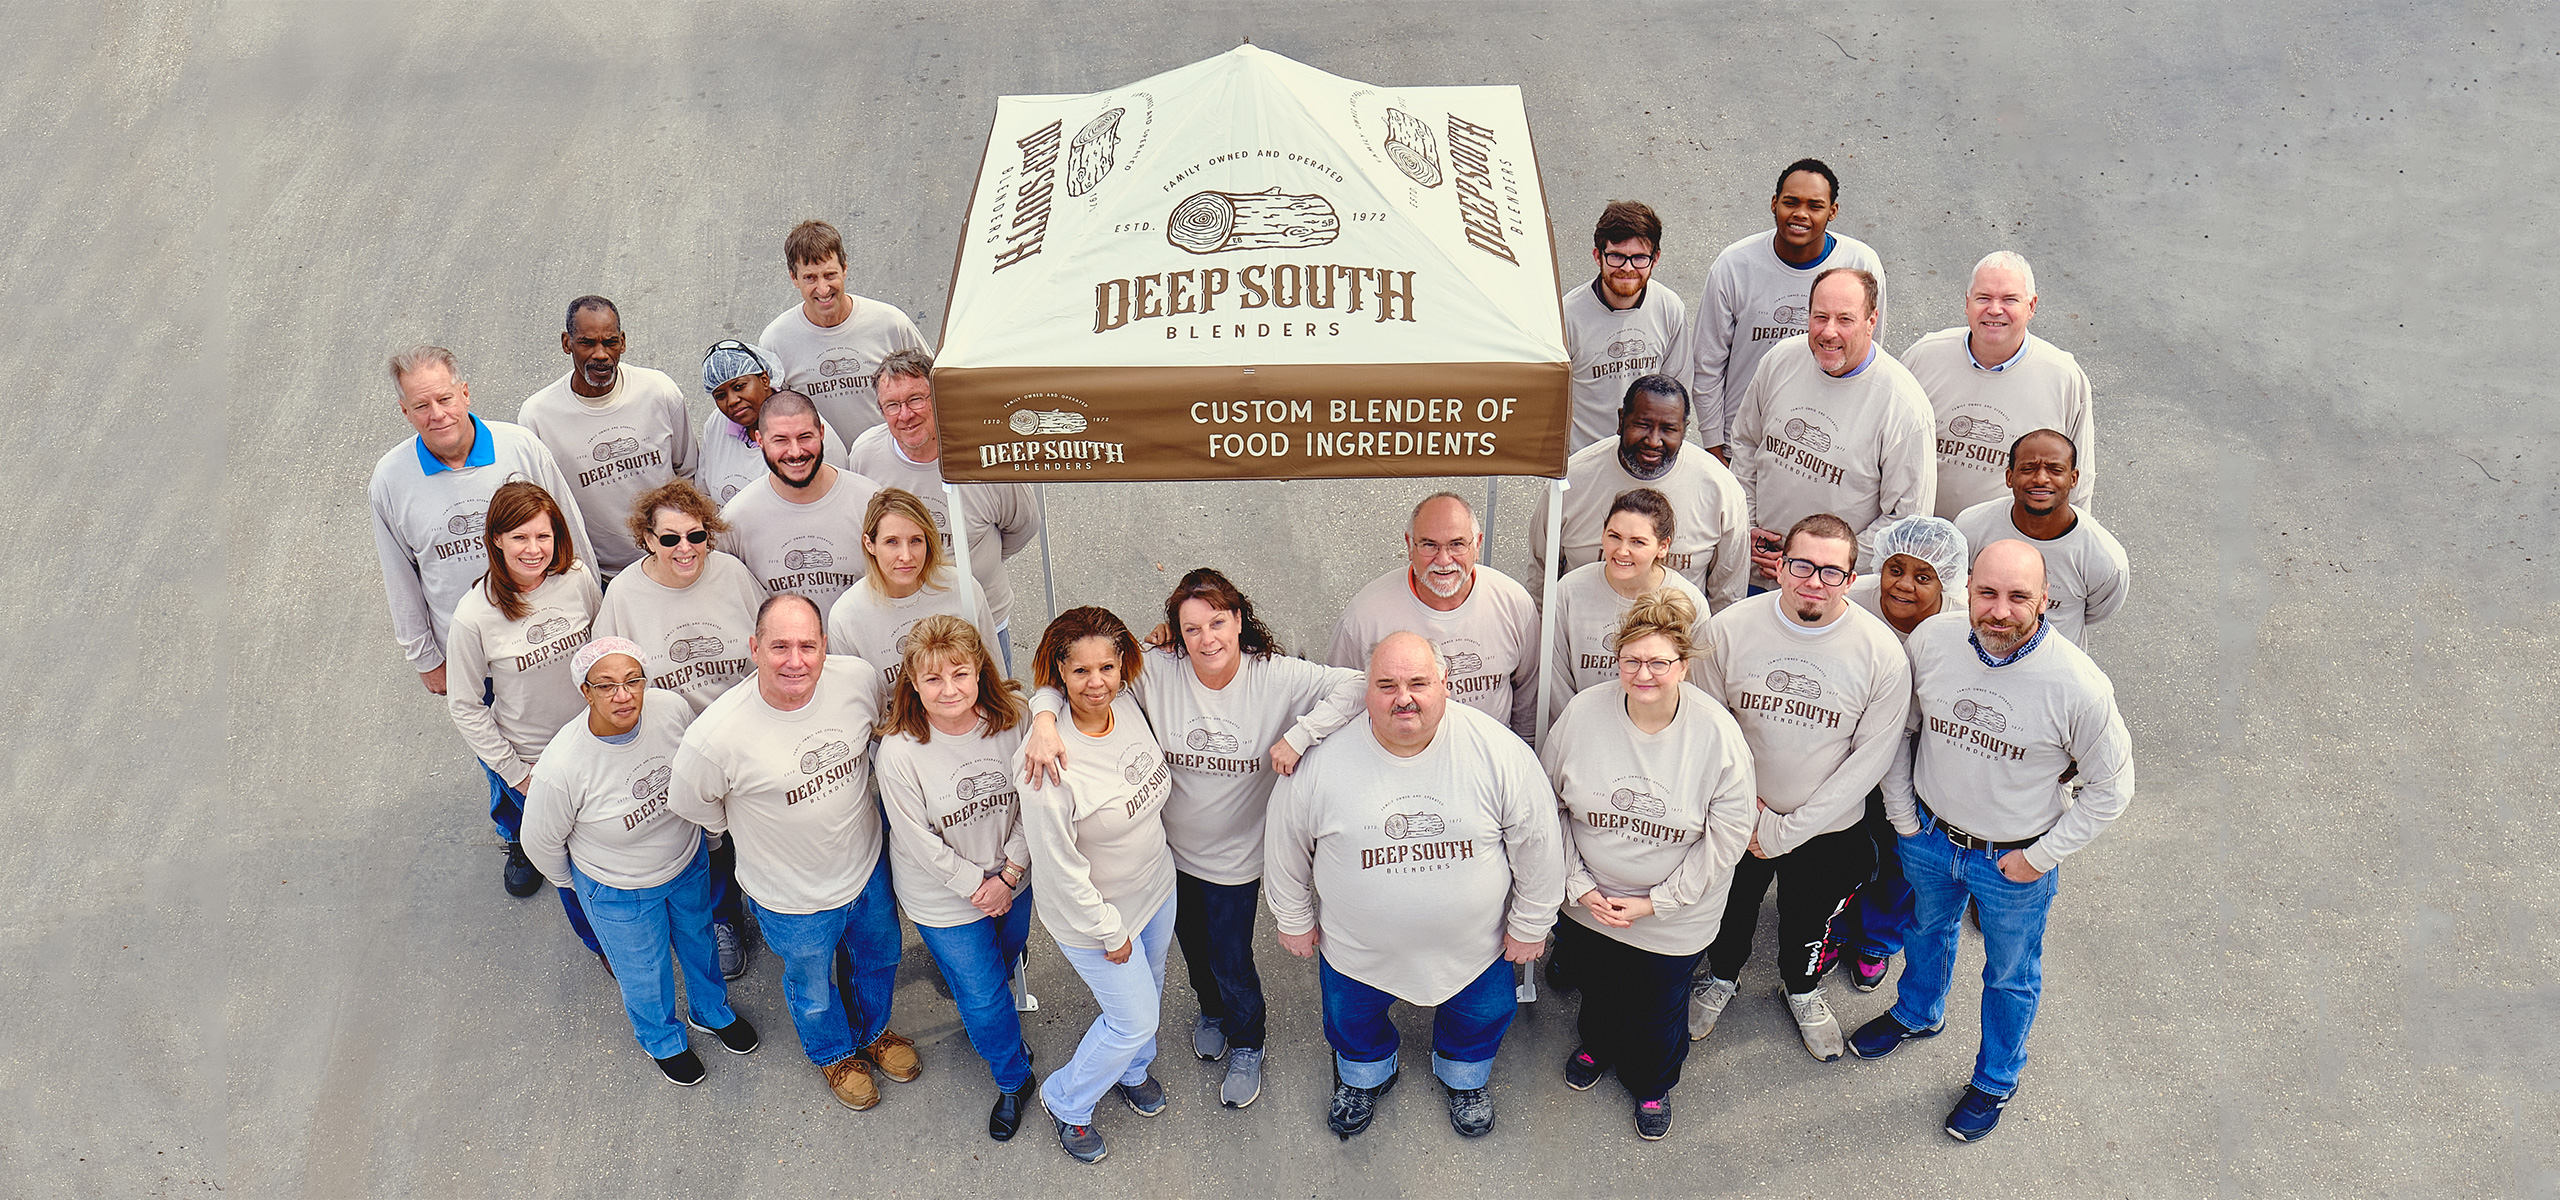 Contact Deep South Blenders Staff